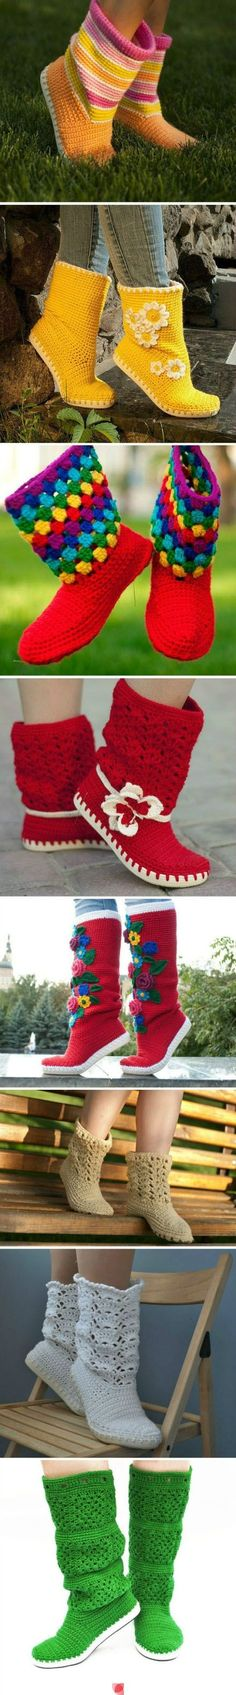 Someone please make me a pair of these crochet boots!!! So cute!! Chelsey Wagaman!